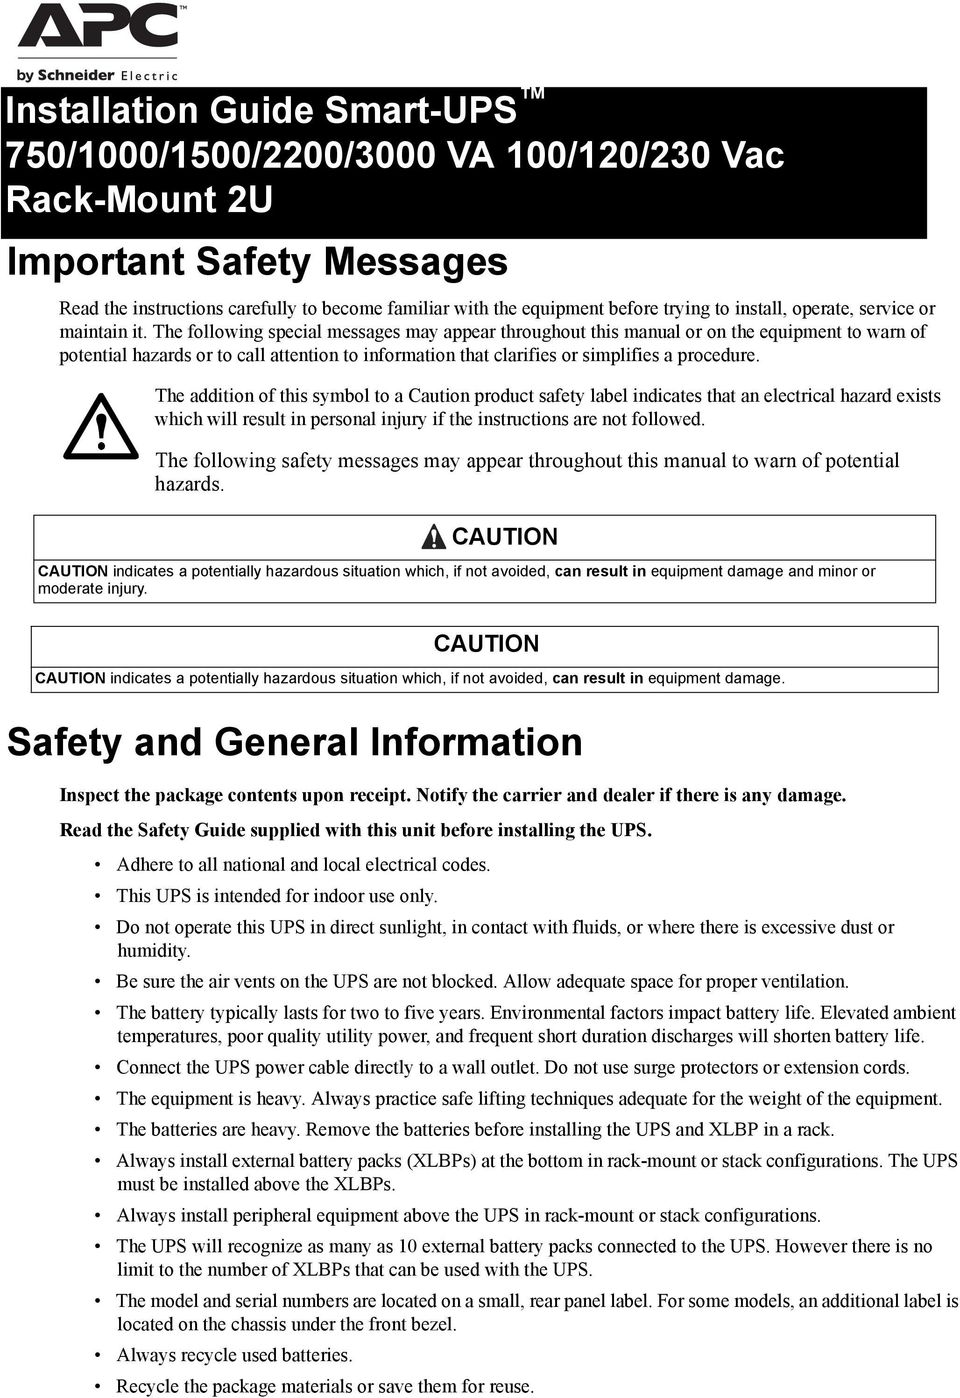 The following special messages may appear throughout this manual or on the equipment to warn of potential hazards or to call attention to information that clarifies or simplifies a procedure.